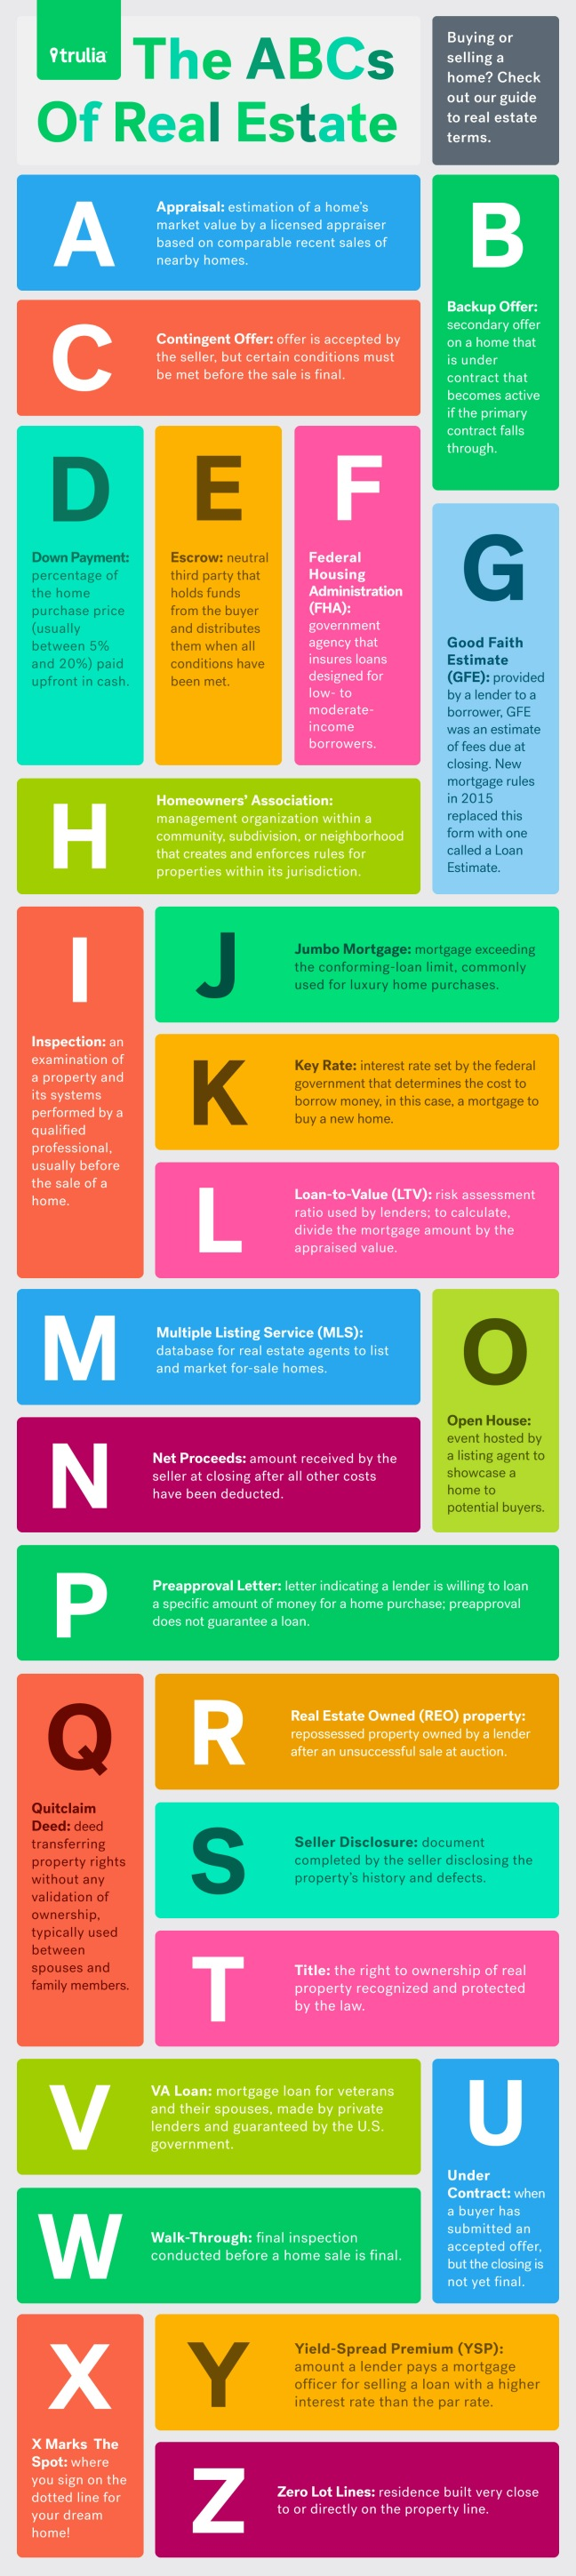 ABCs-Of-Real-Estate-11-6-Infographic[1]